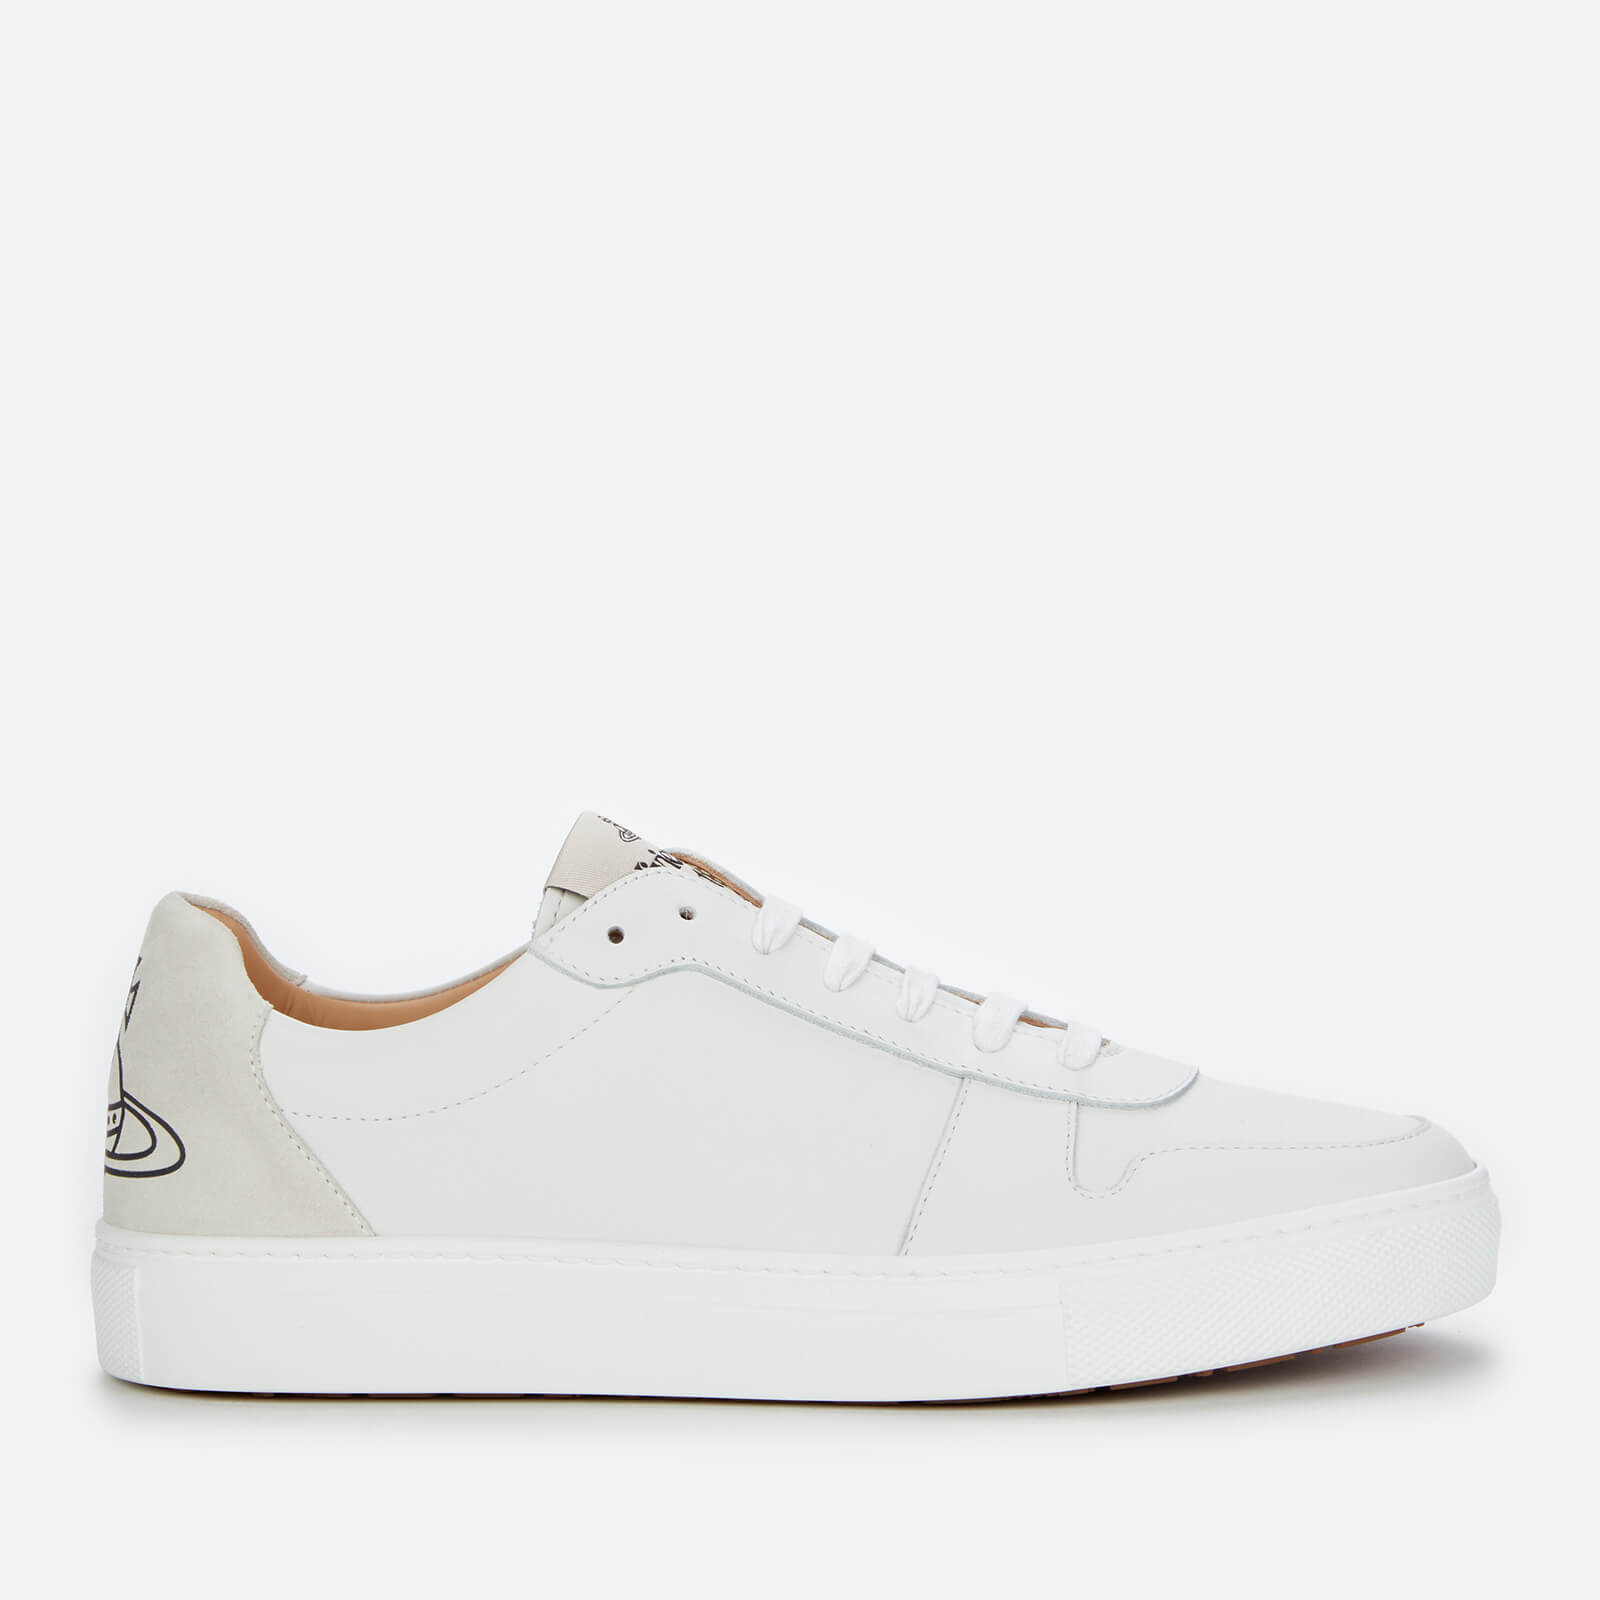 Vivienne Westwood Women's Apollo Leather Cupsole Trainers - White